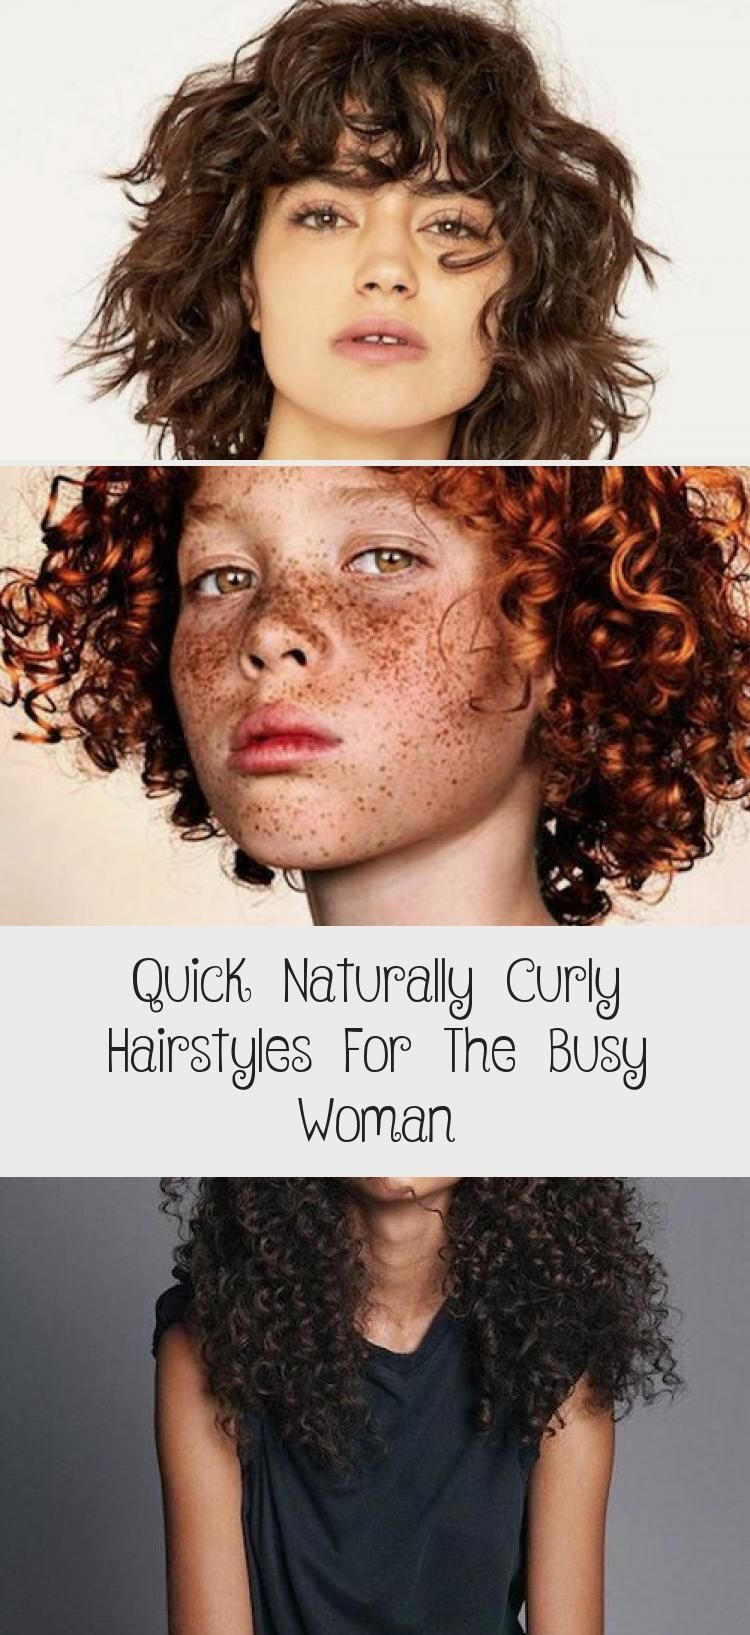 Fast naturally curly hairstyles for the busy woman - best hairstyles - #curly #hairstyles #naturally #woman - #new